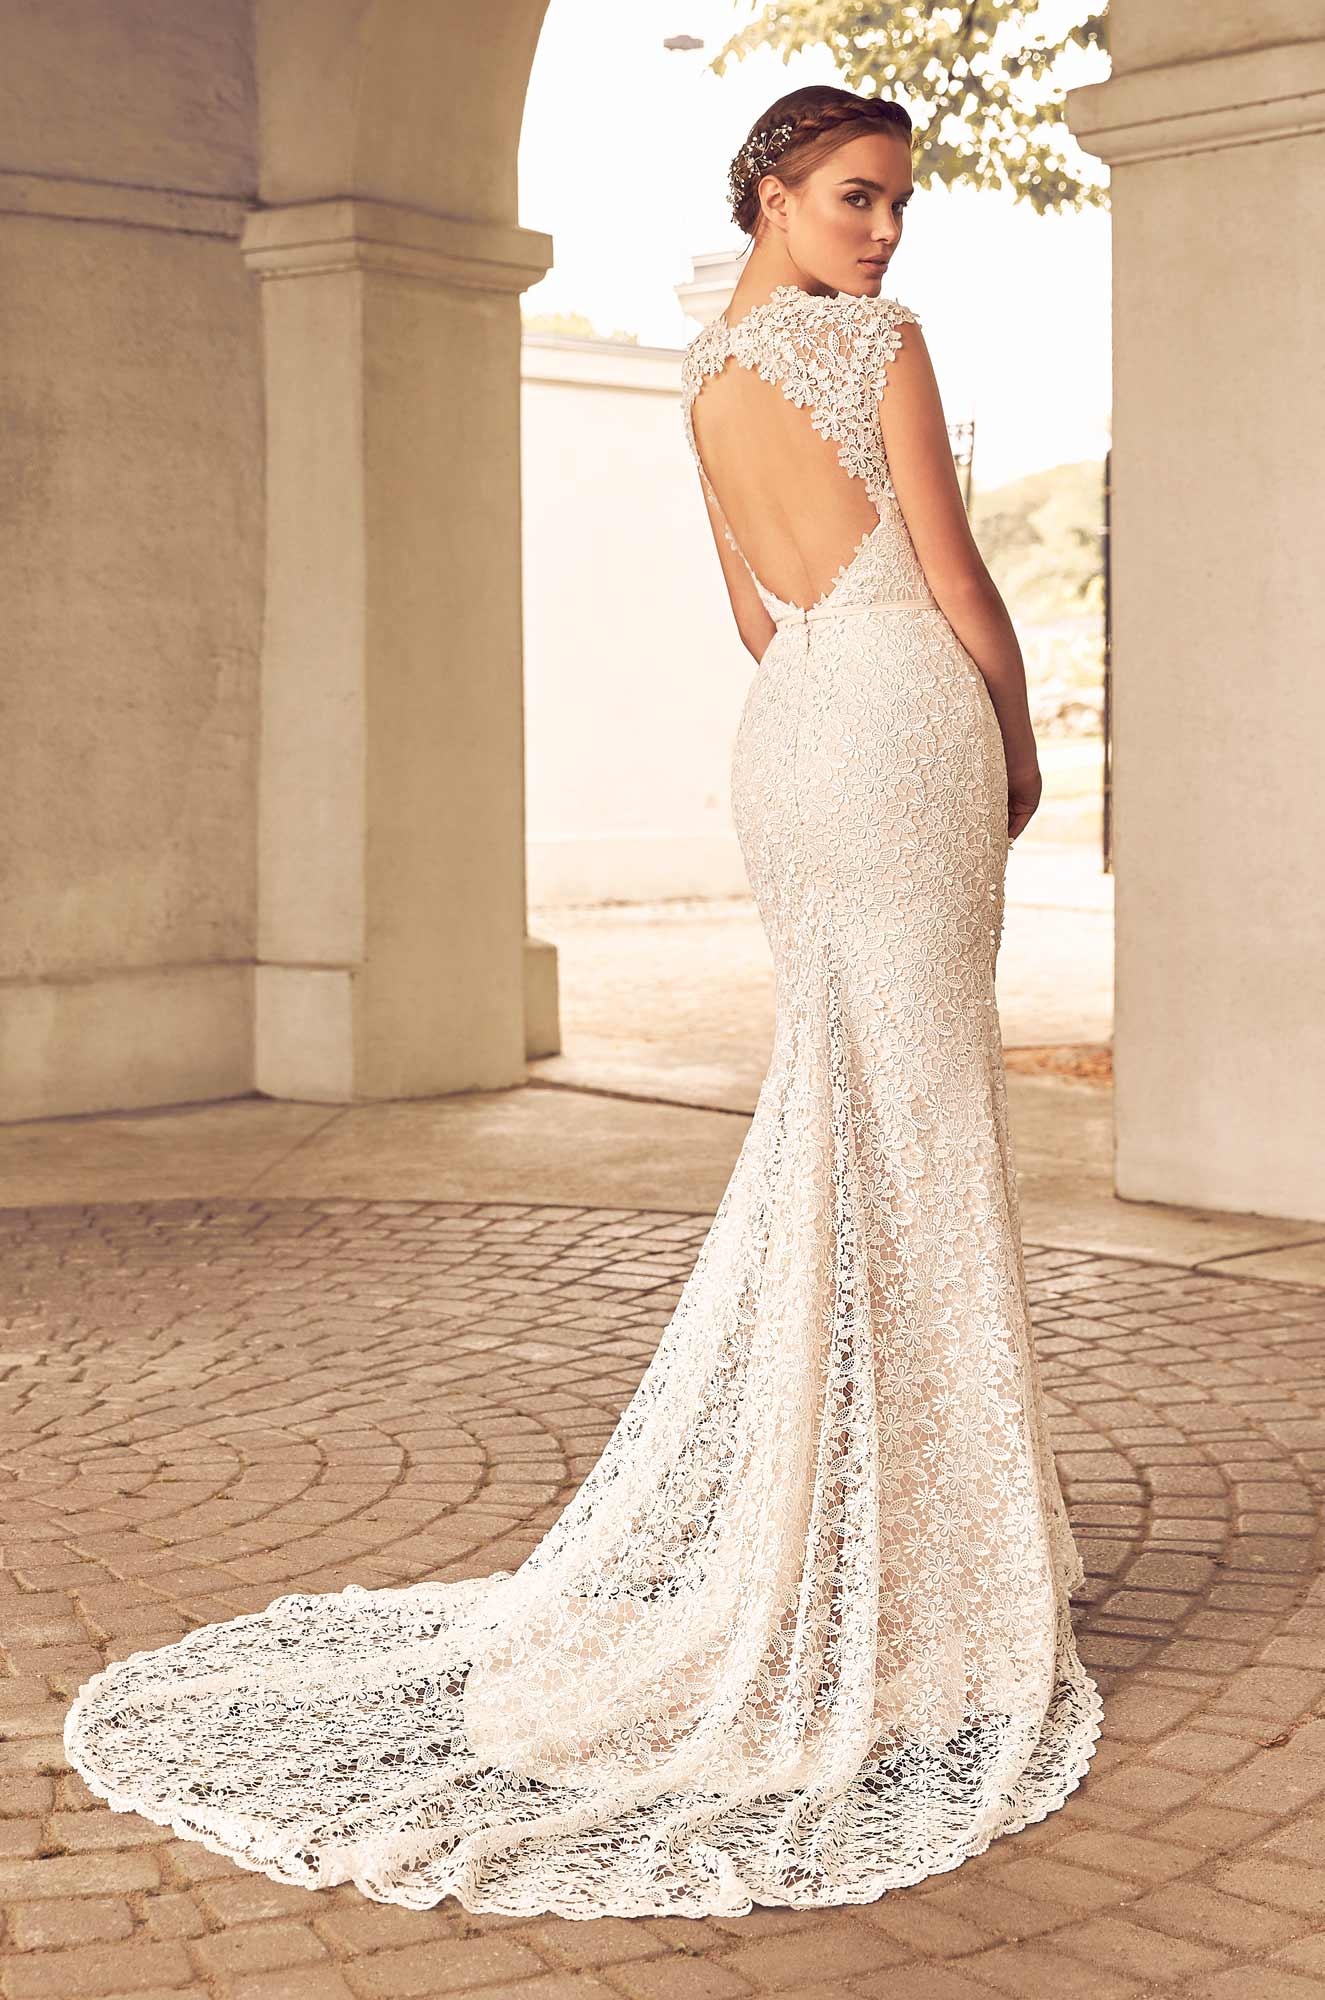 Floral Lace Wedding Dress - Style #4784 | Paloma Blanca